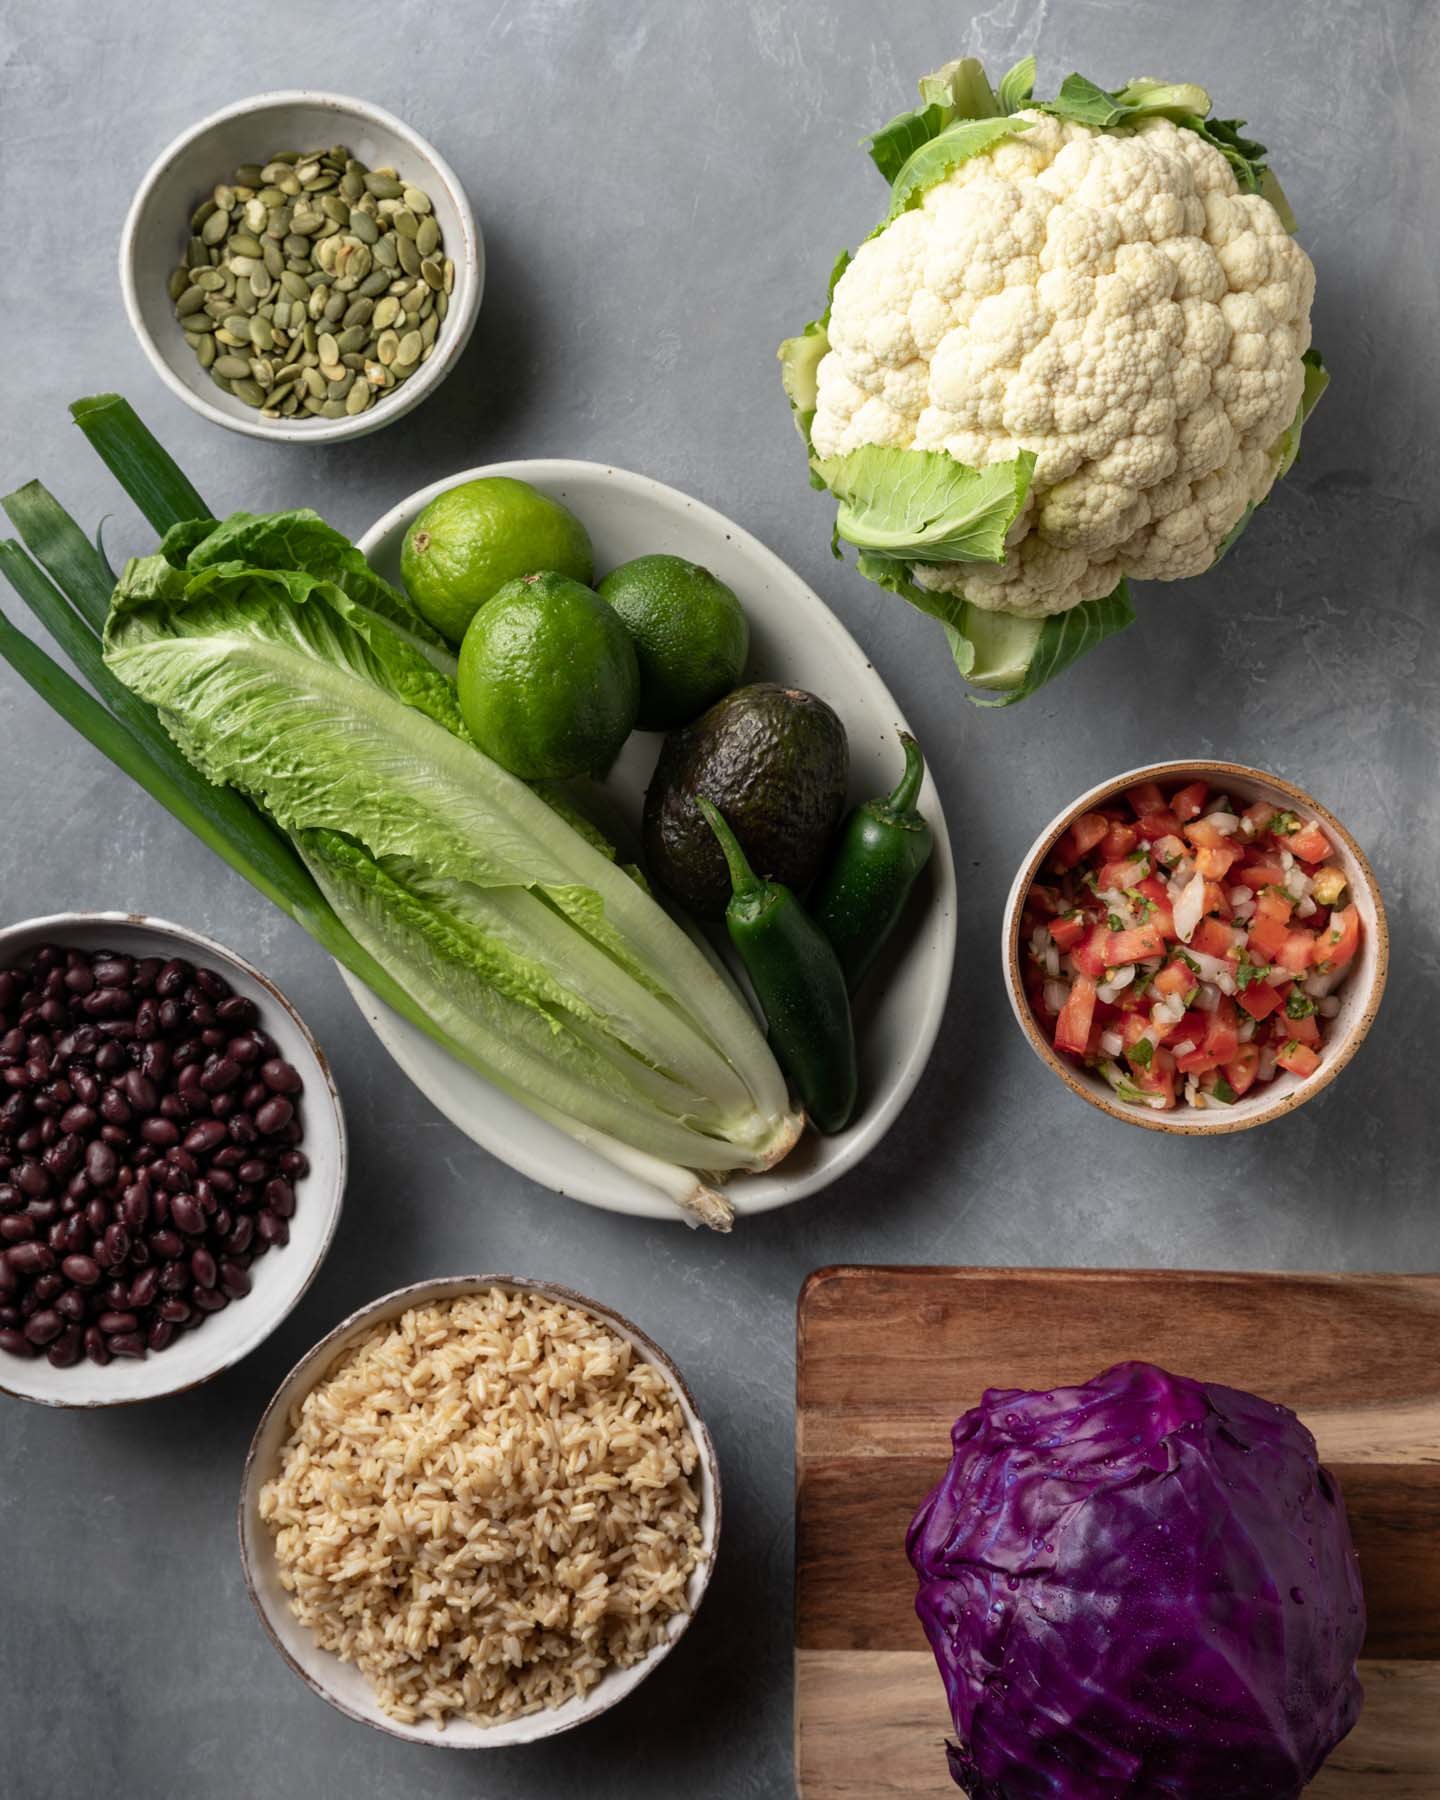 Ingredients for making a Vegan Mexican Bowl